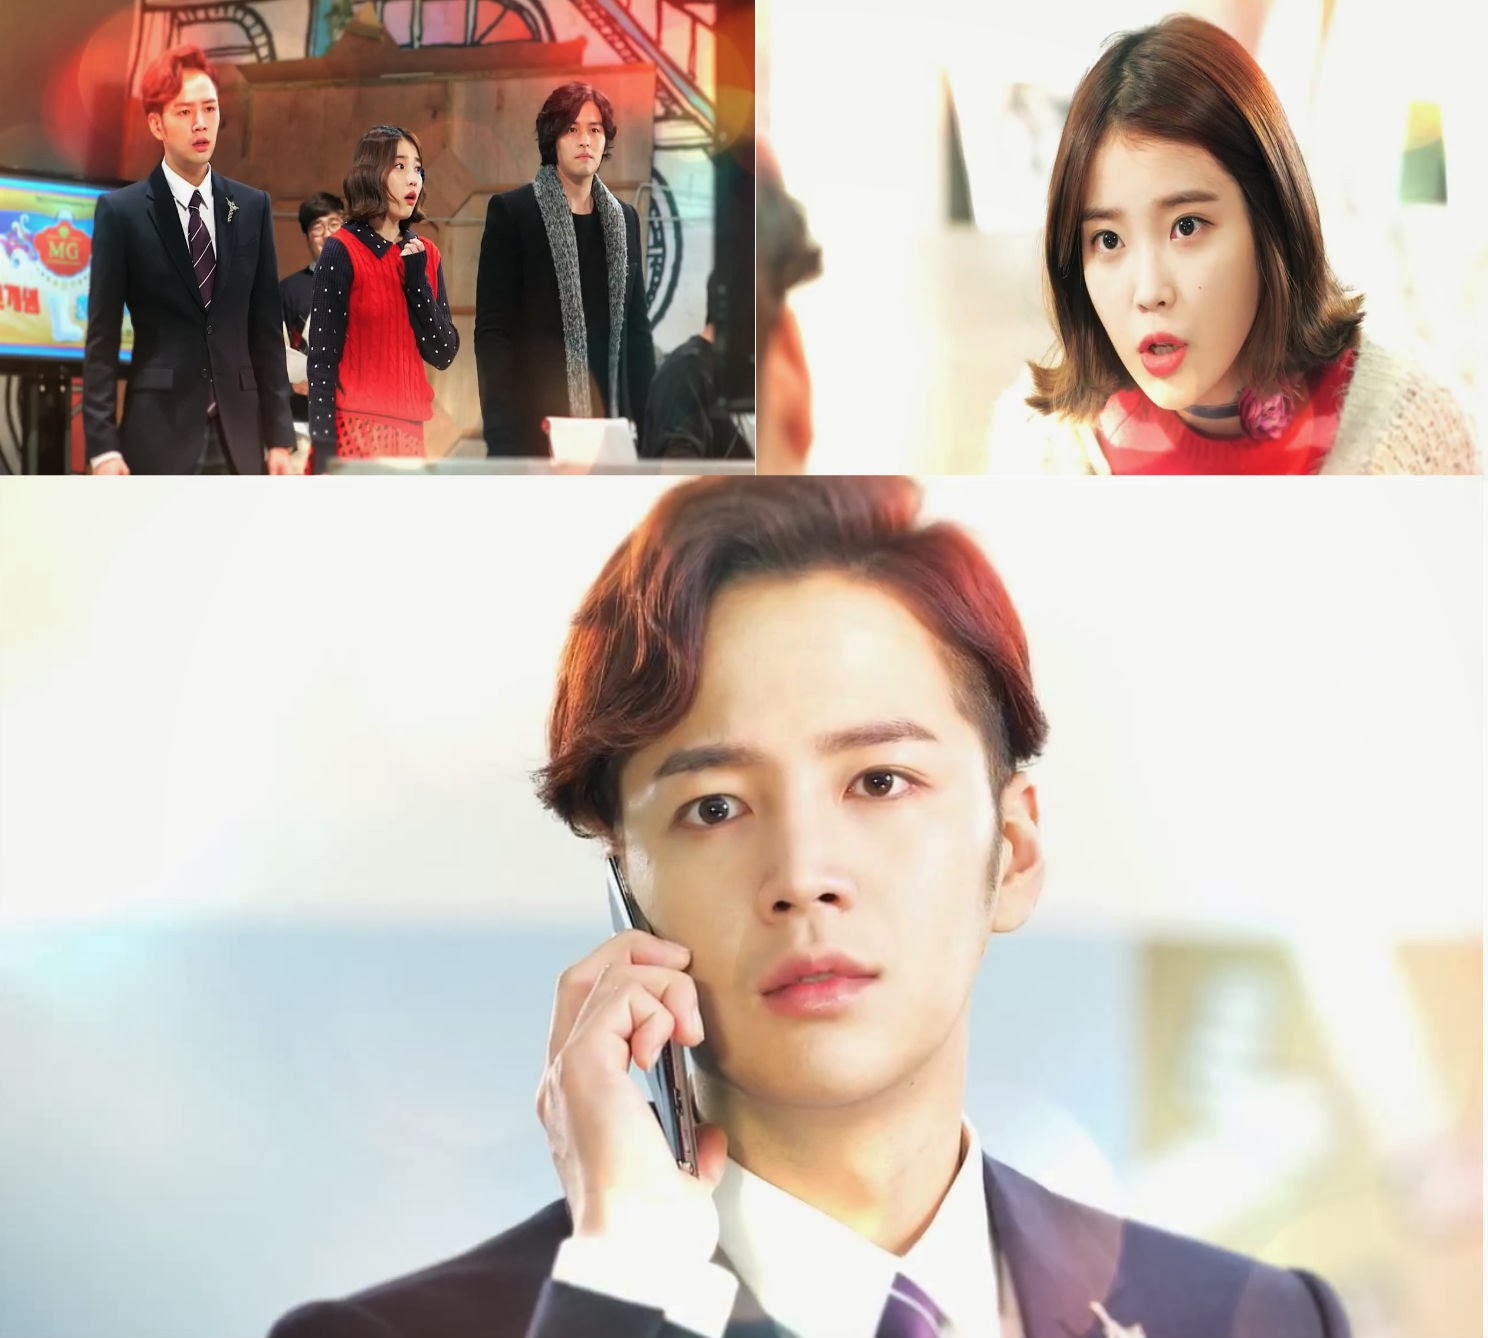 Pretty Man Ep 2 Eng Sub Dailymotion Descargador :: tiotrodorre cf